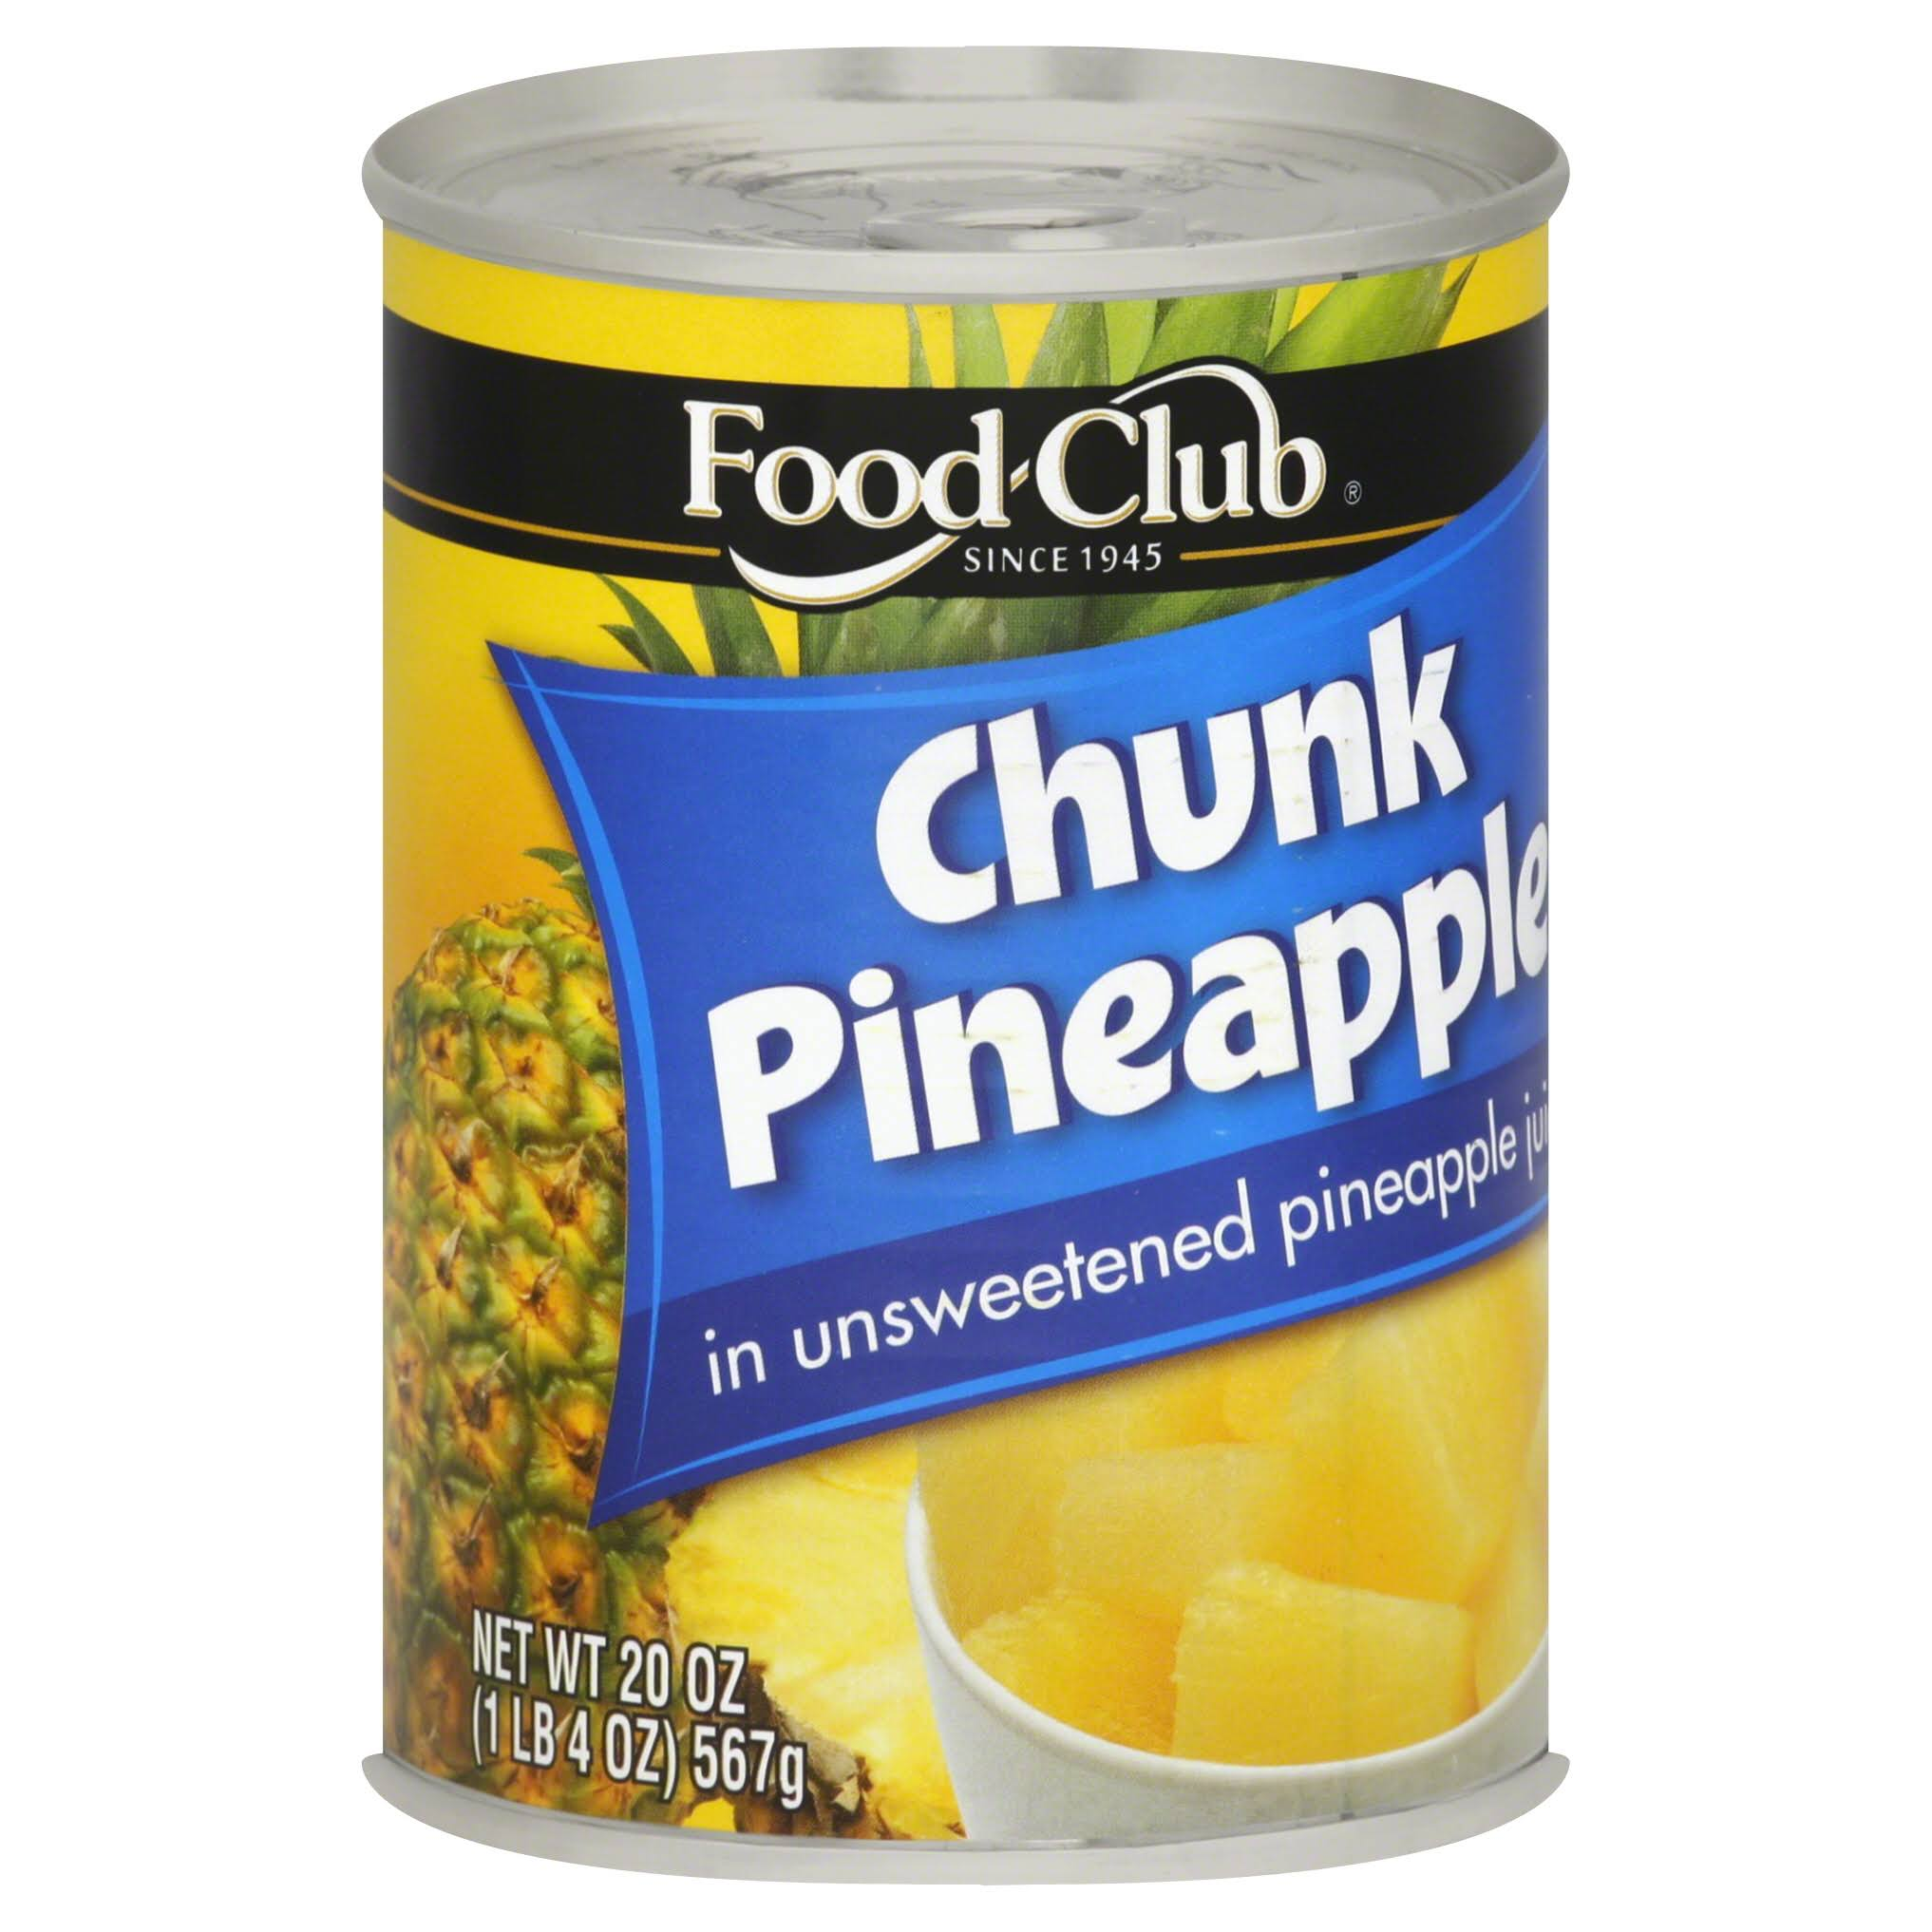 Food Club Pineapple, Chunk, In Unsweetened Pineapple Juice - 20 oz